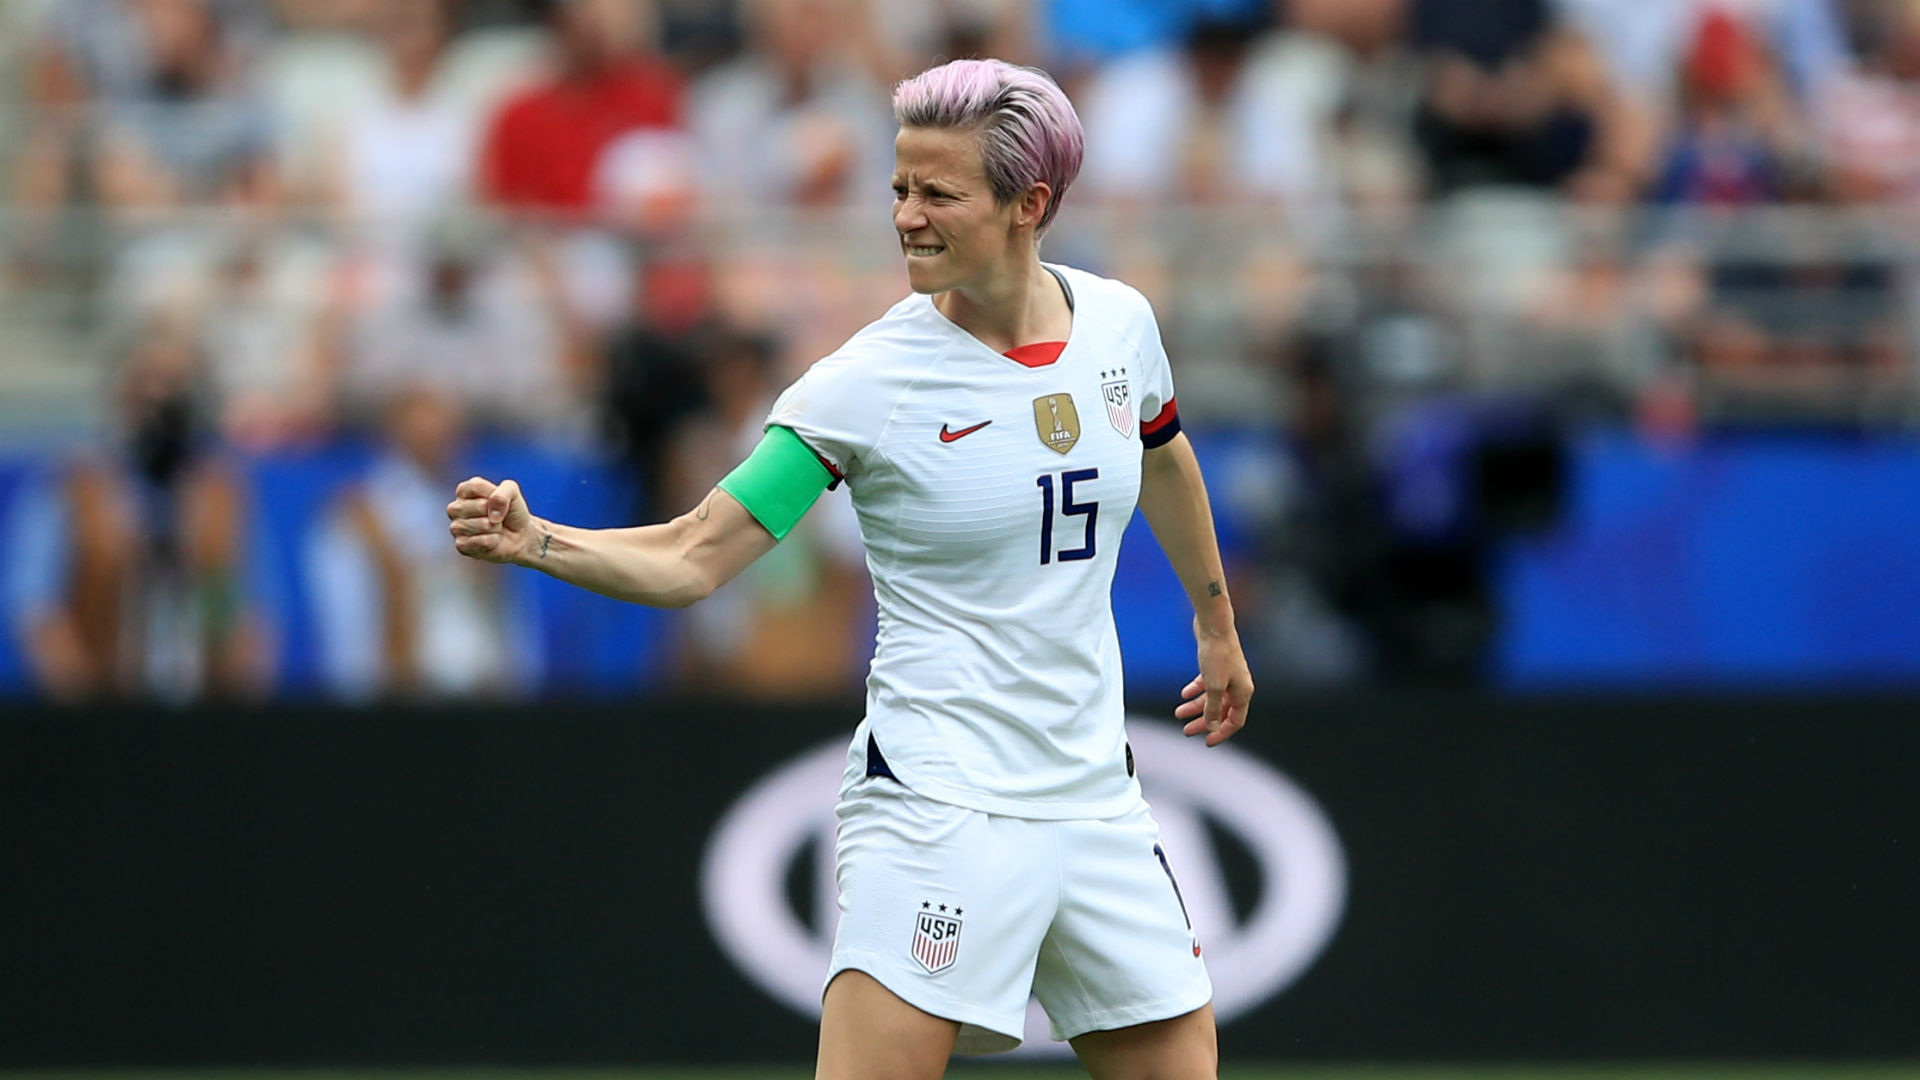 Women's World Cup 2019: USA's Megan Rapinoe predicts match against France will be 'crazy'